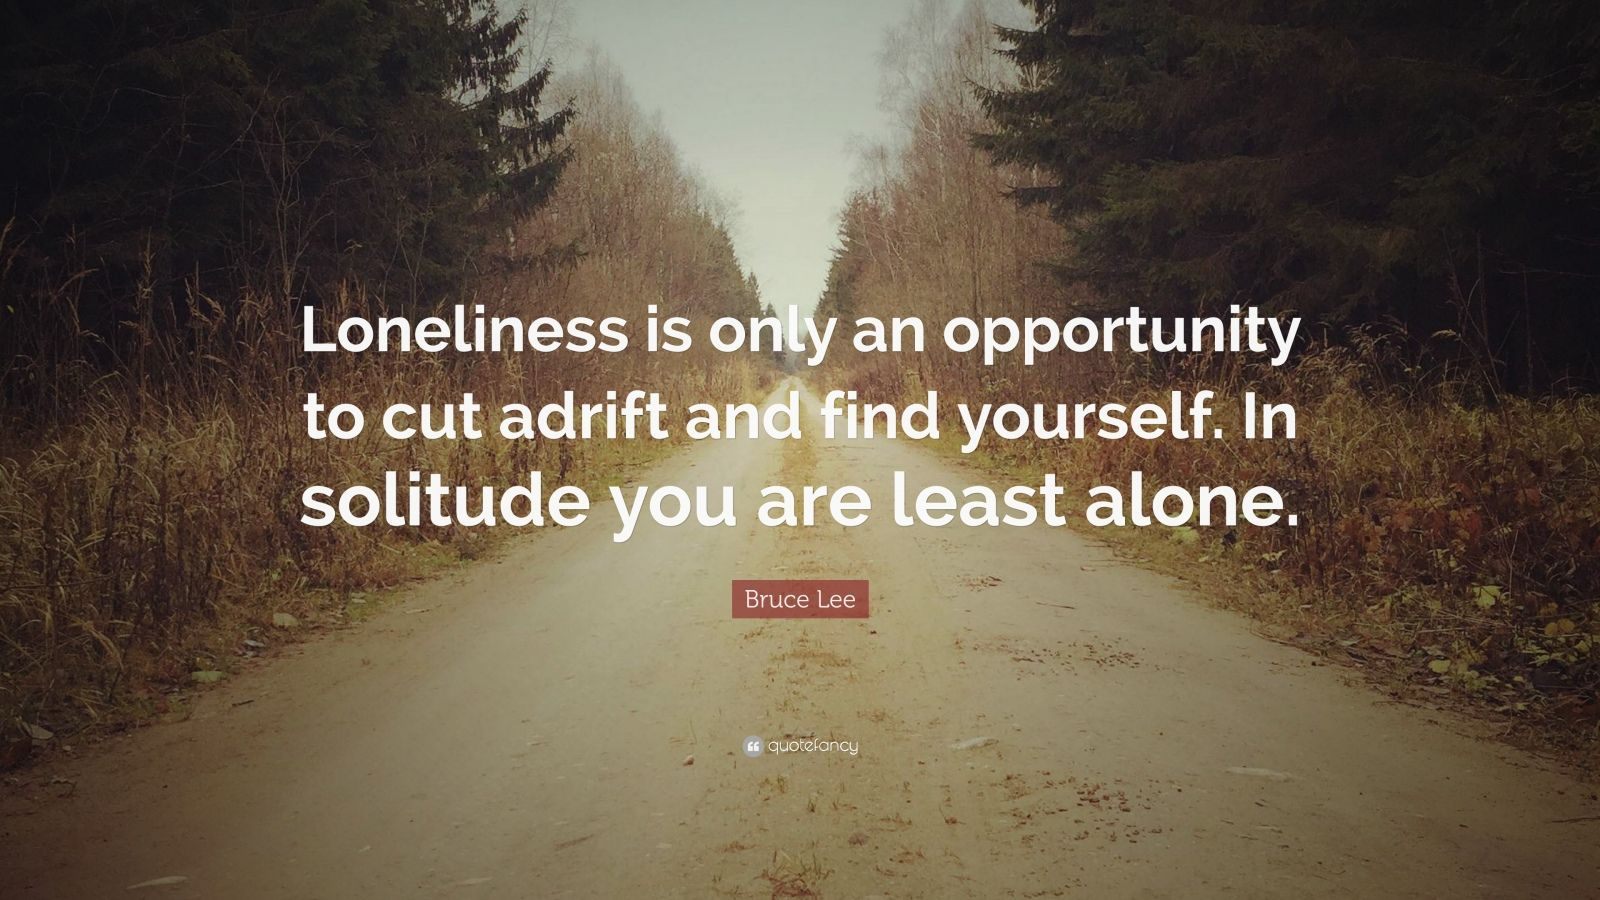 """Bruce Lee Quote: """"Loneliness is only an opportunity to cut adrift and find yourself. In solitude you are least alone."""""""